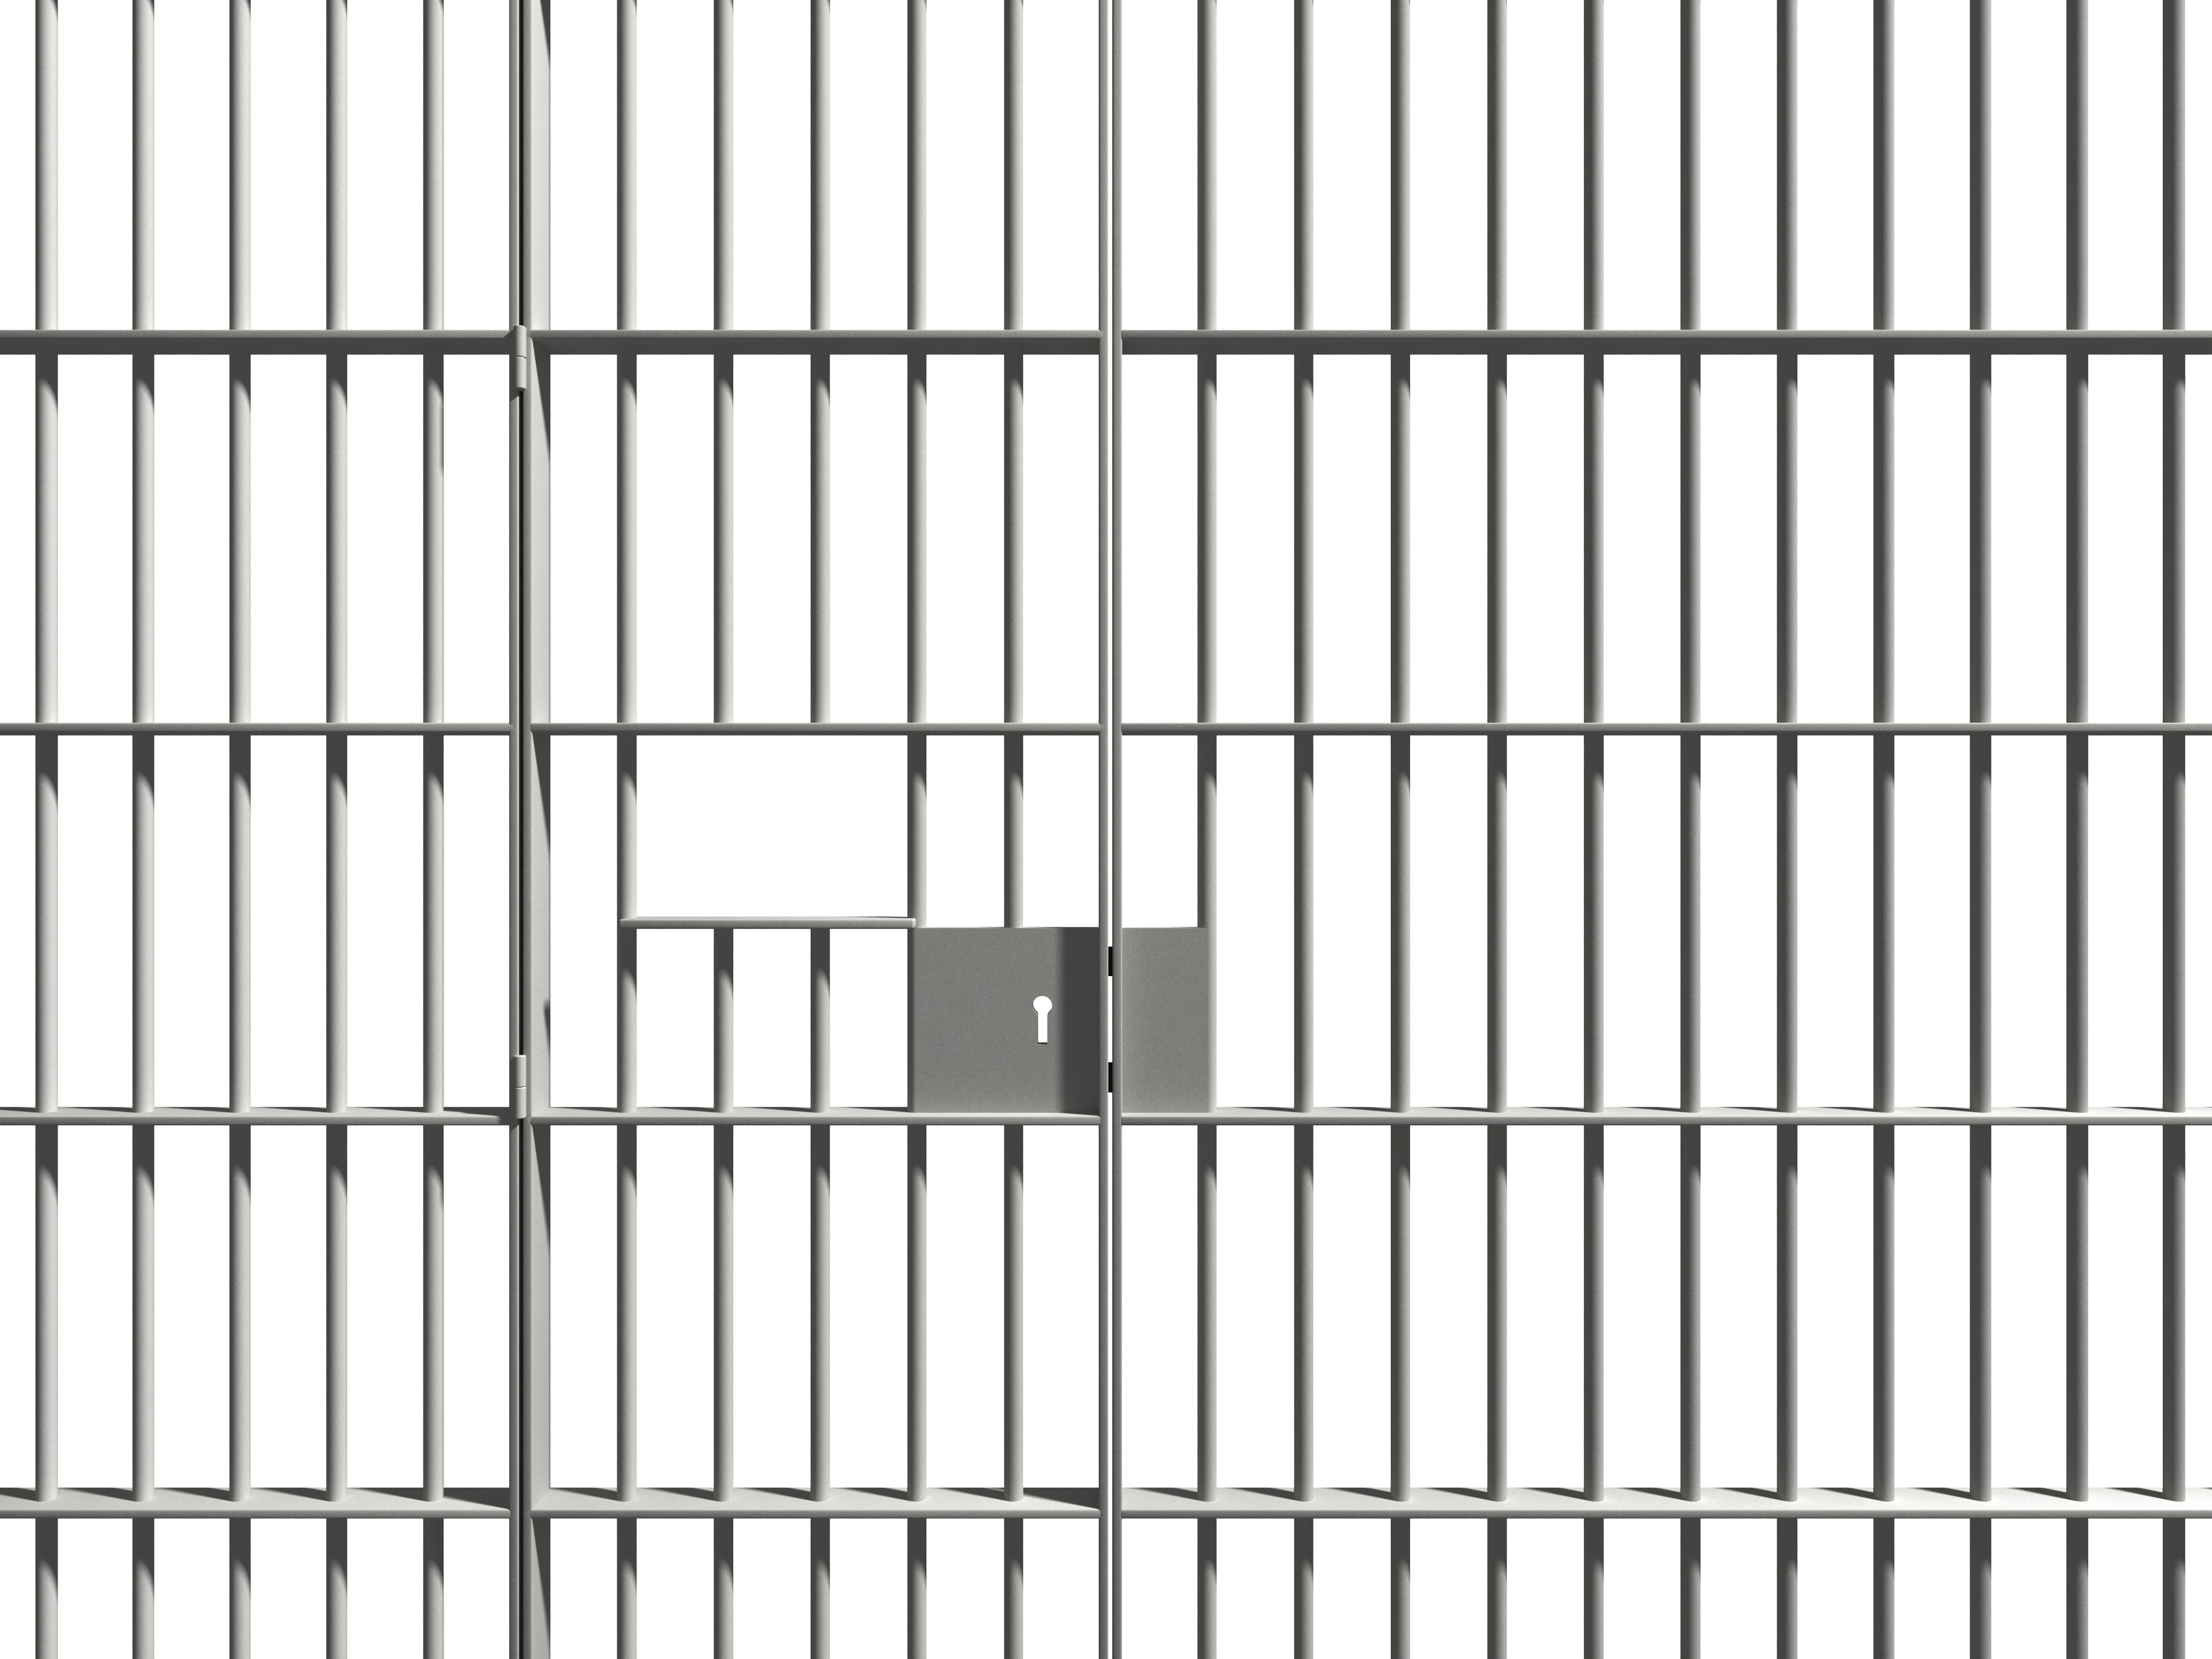 Jail clipart photoshop graphic freeuse download Pin by M Atiqu on Tent in 2019 | Jail bars, Prison, Jail cell graphic freeuse download